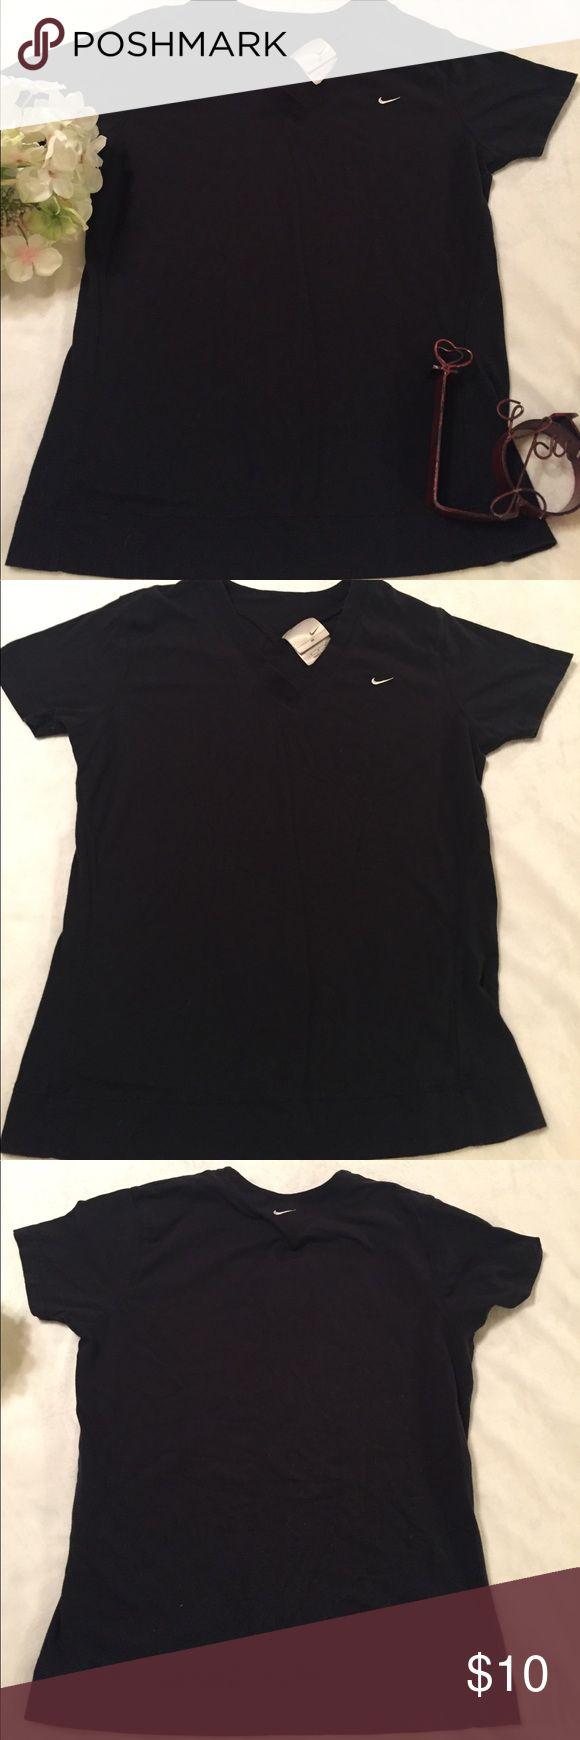 Nike workout shirt This shirt is like new, black Nike workout shirt; 95% cotton, 5% spandex Nike Tops Tees - Short Sleeve